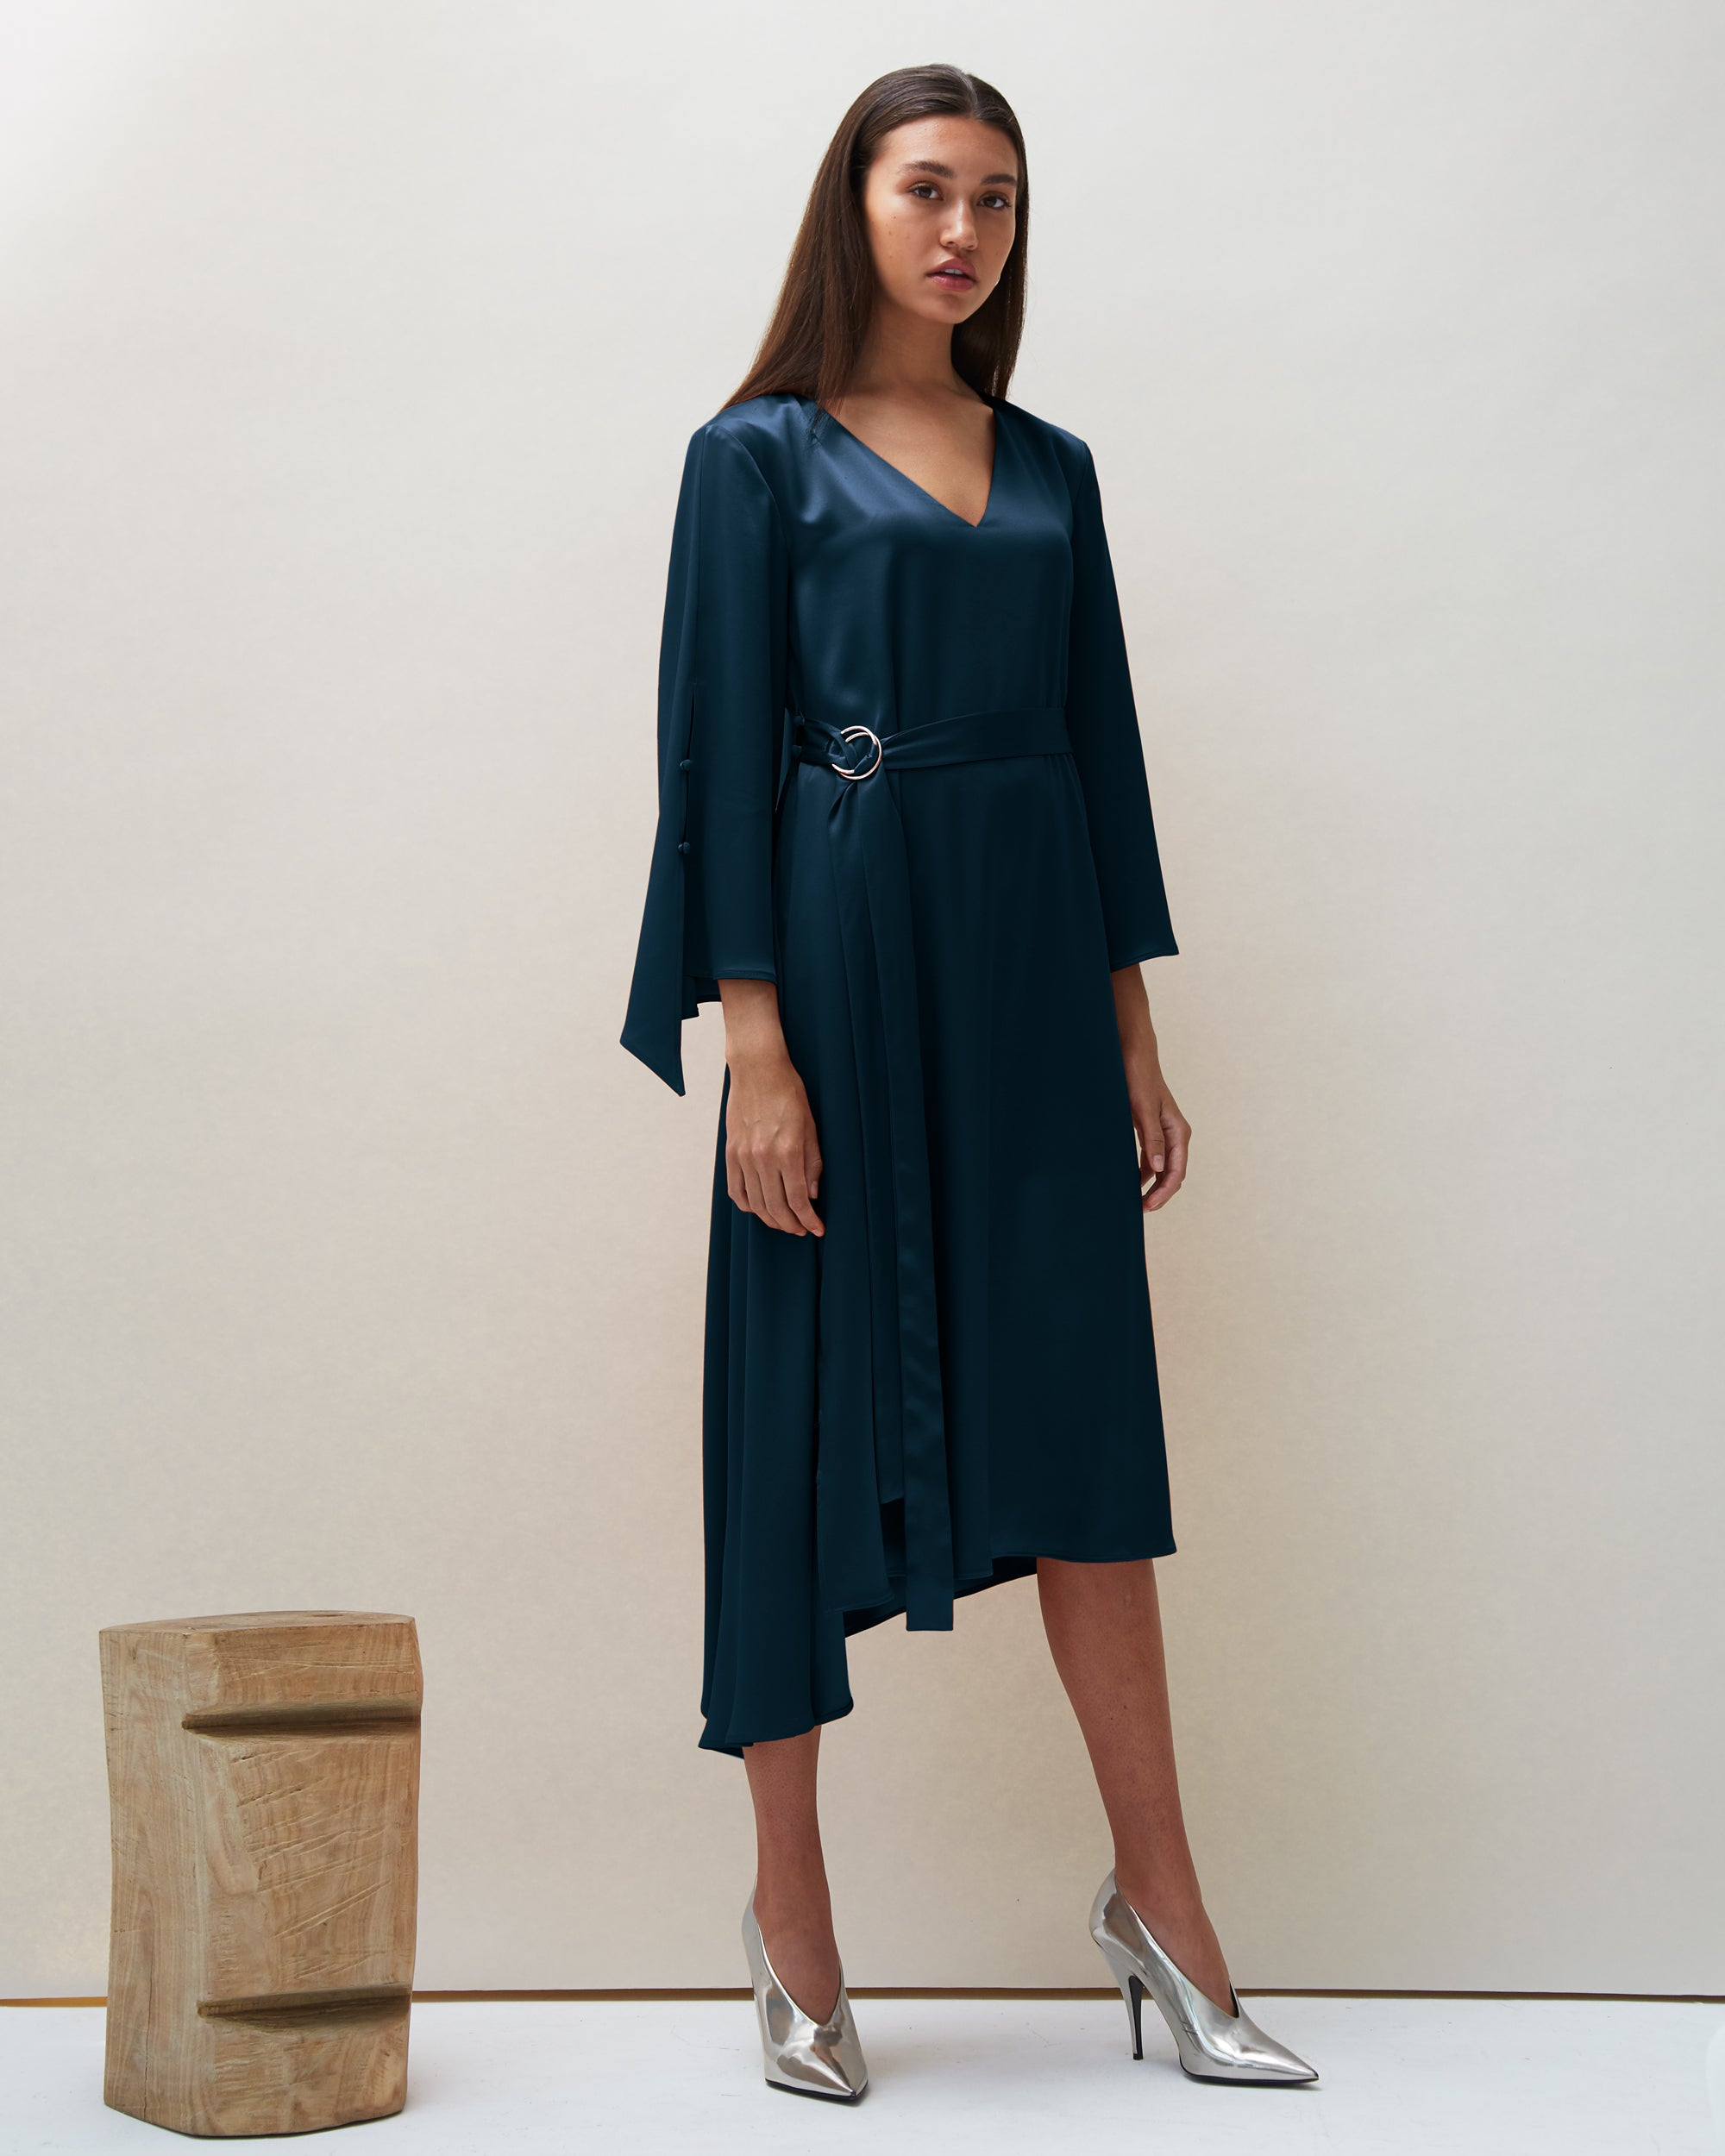 Dua Dress in Navy | Made-to-order